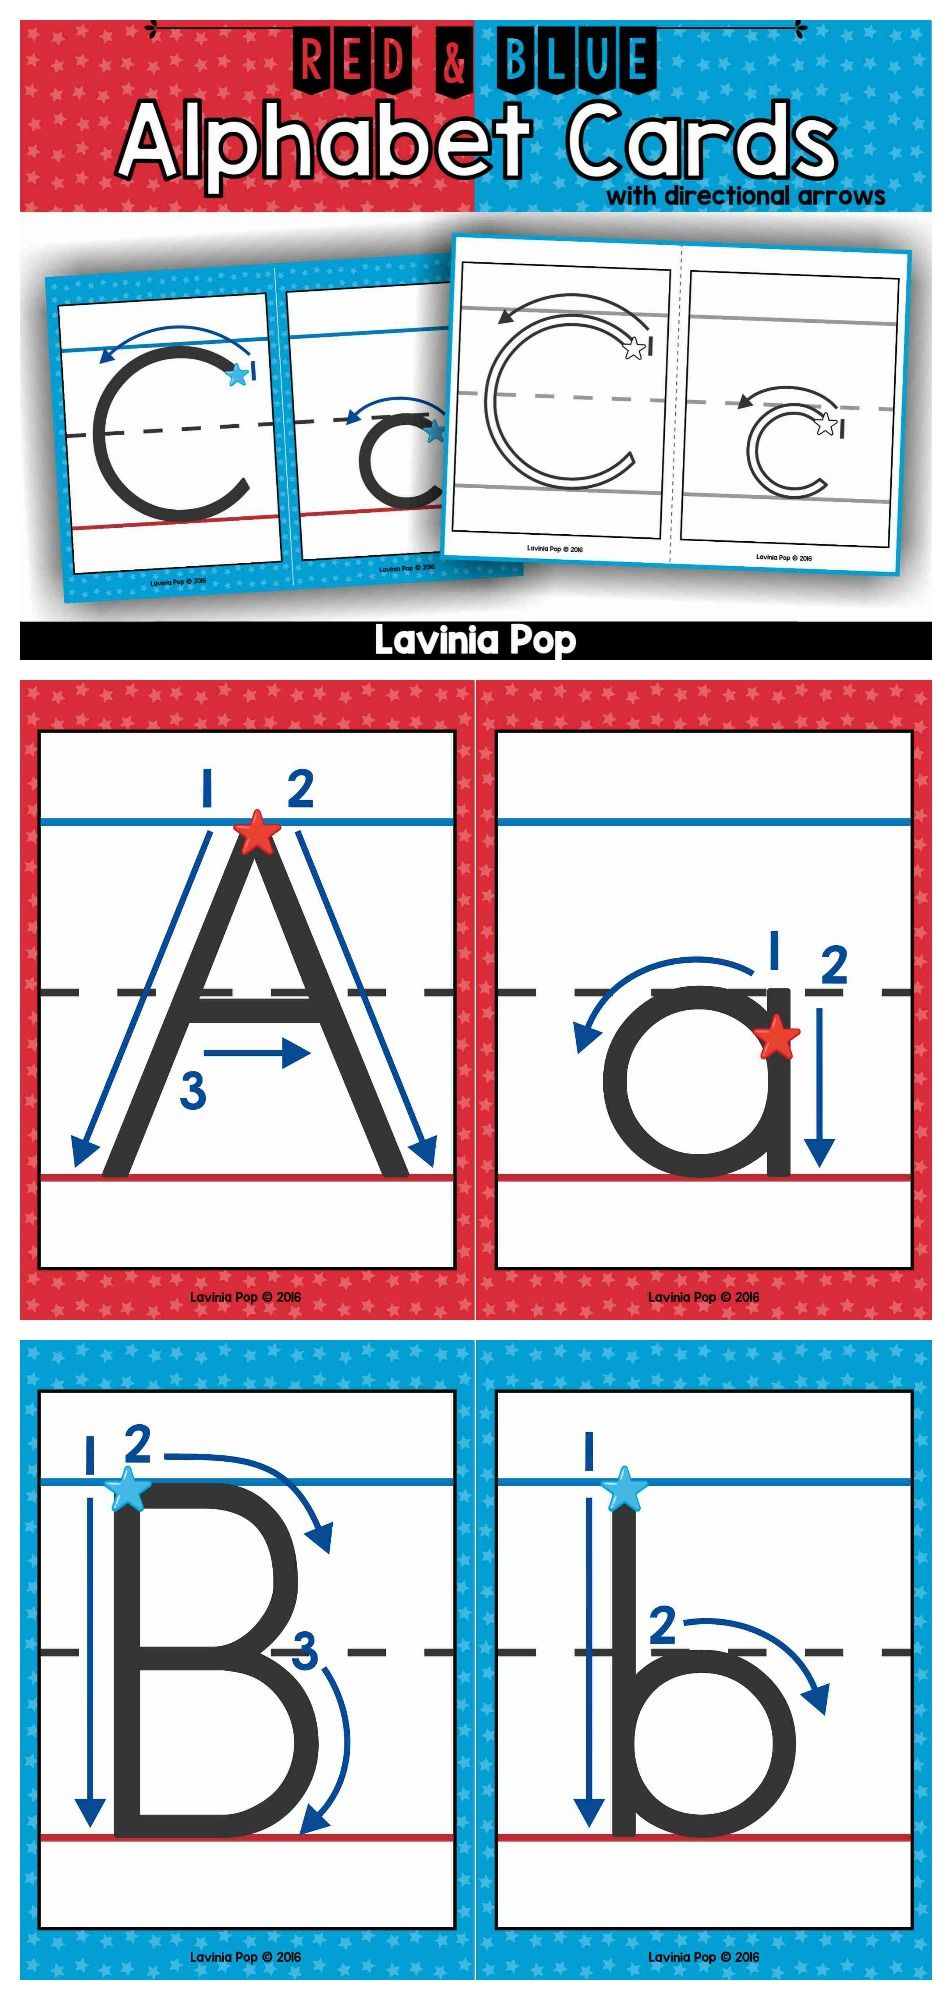 Alphabet Handwriting Cards With Directional Arrows - Red